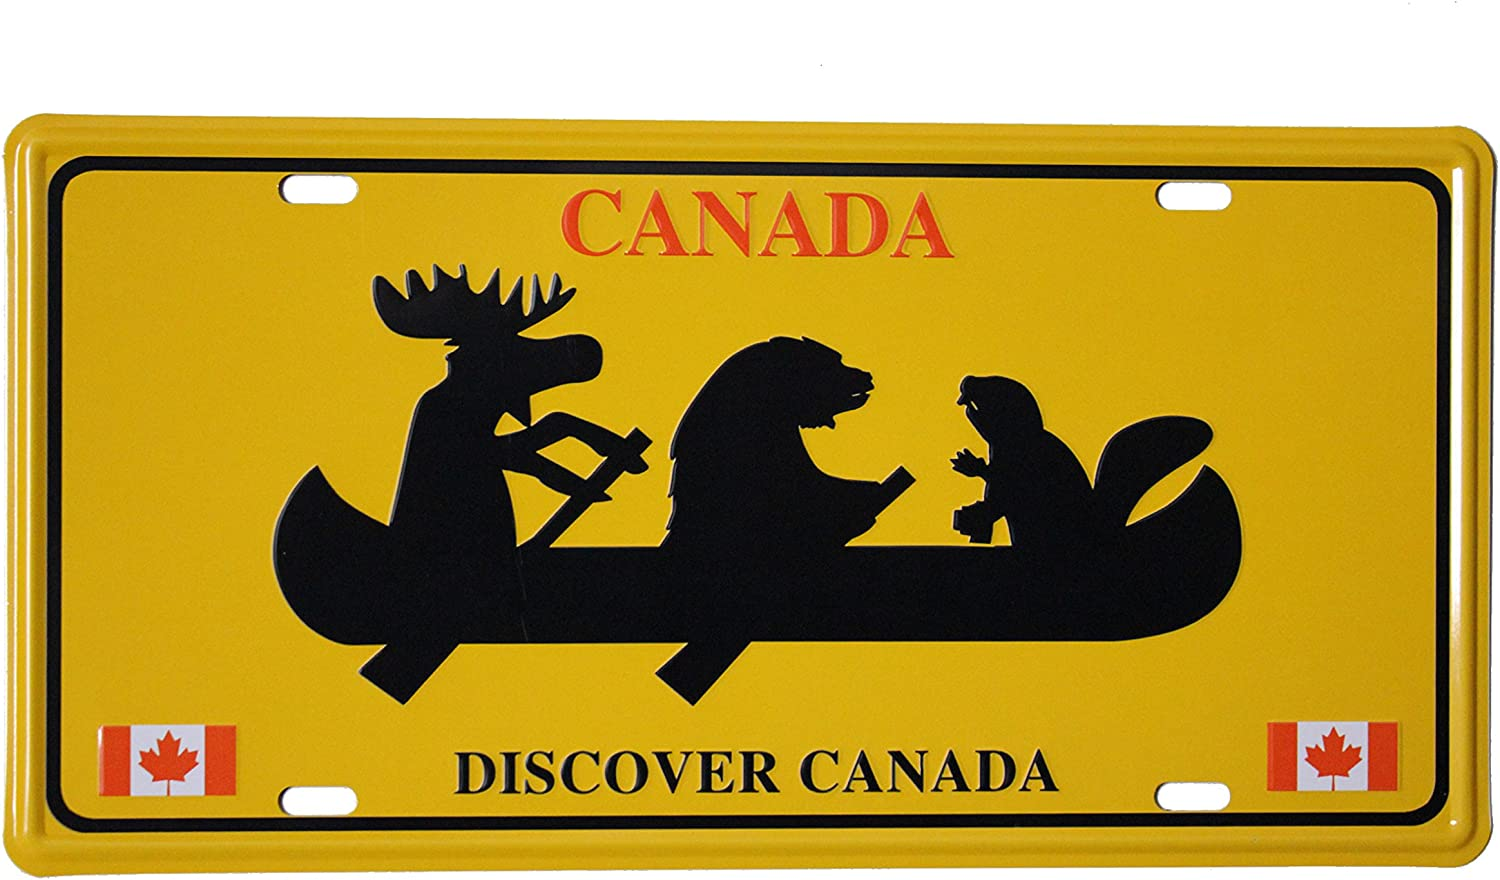 Beaver Moose On Boat  Souvenir CAR LICENSED PLATE..New Bear DISCOVER CANADA